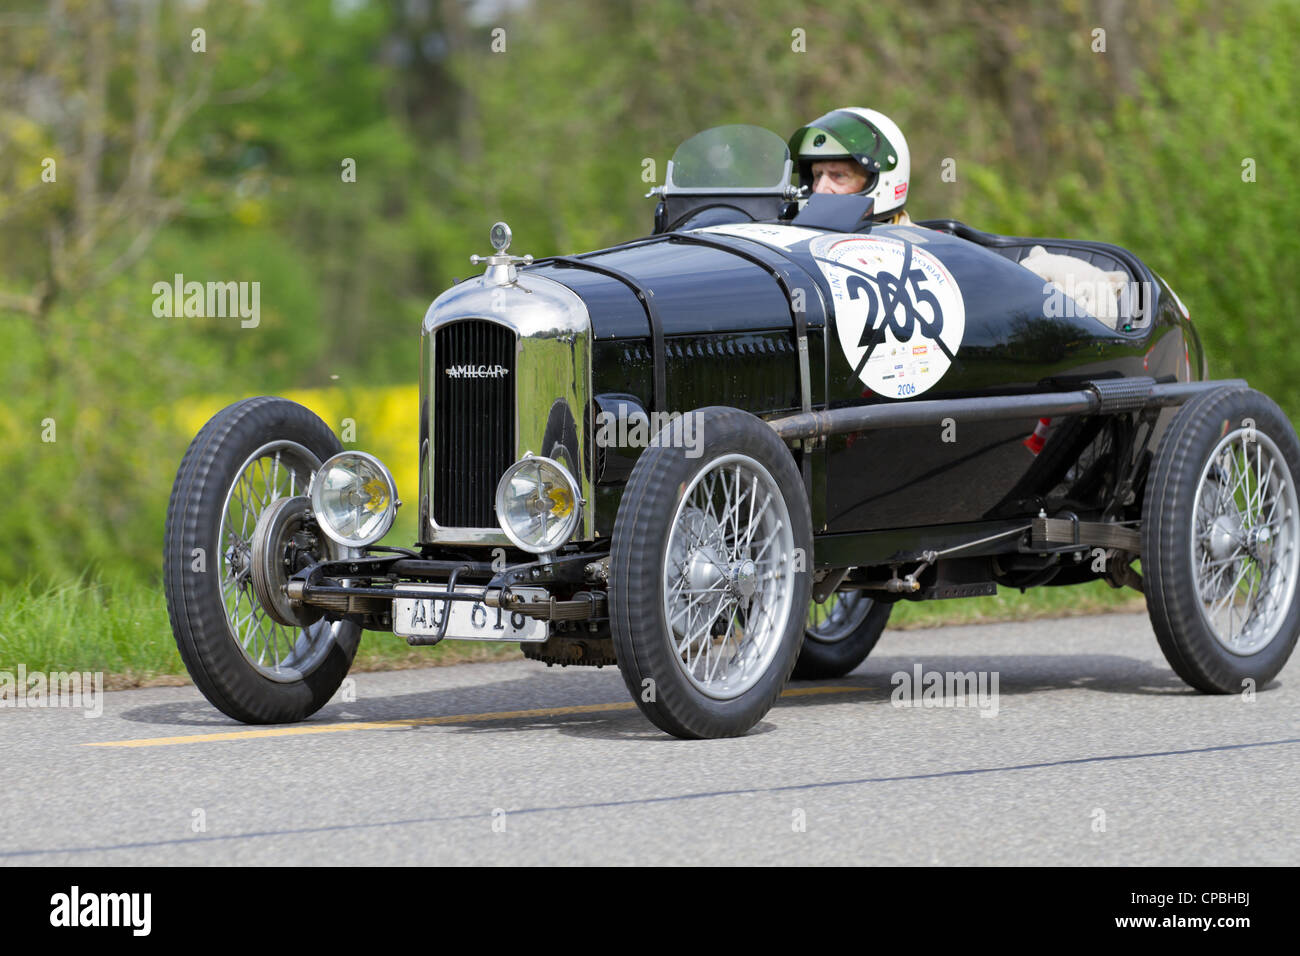 Vintage pre war race car Amilcar CG SS from 1926 at Grand Prix in Mutschellen, SUI on April 29, 2012. - Stock Image